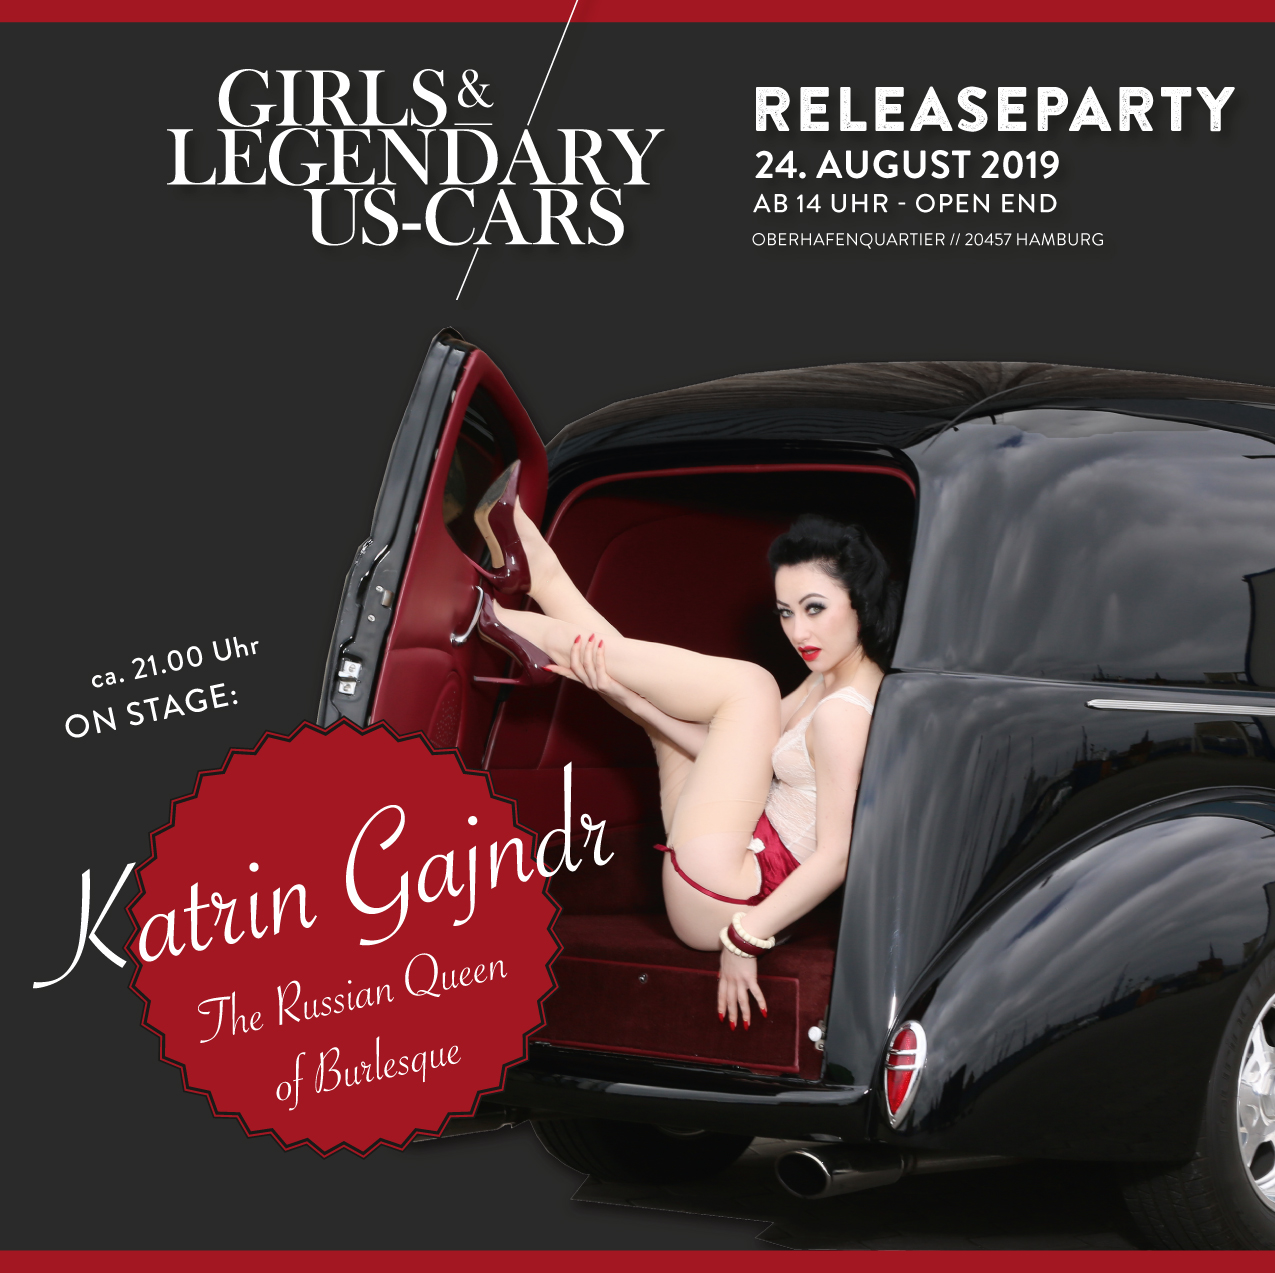 Burlesque-Show by the Russian Queen of Burlesque Katrin Gajndr!